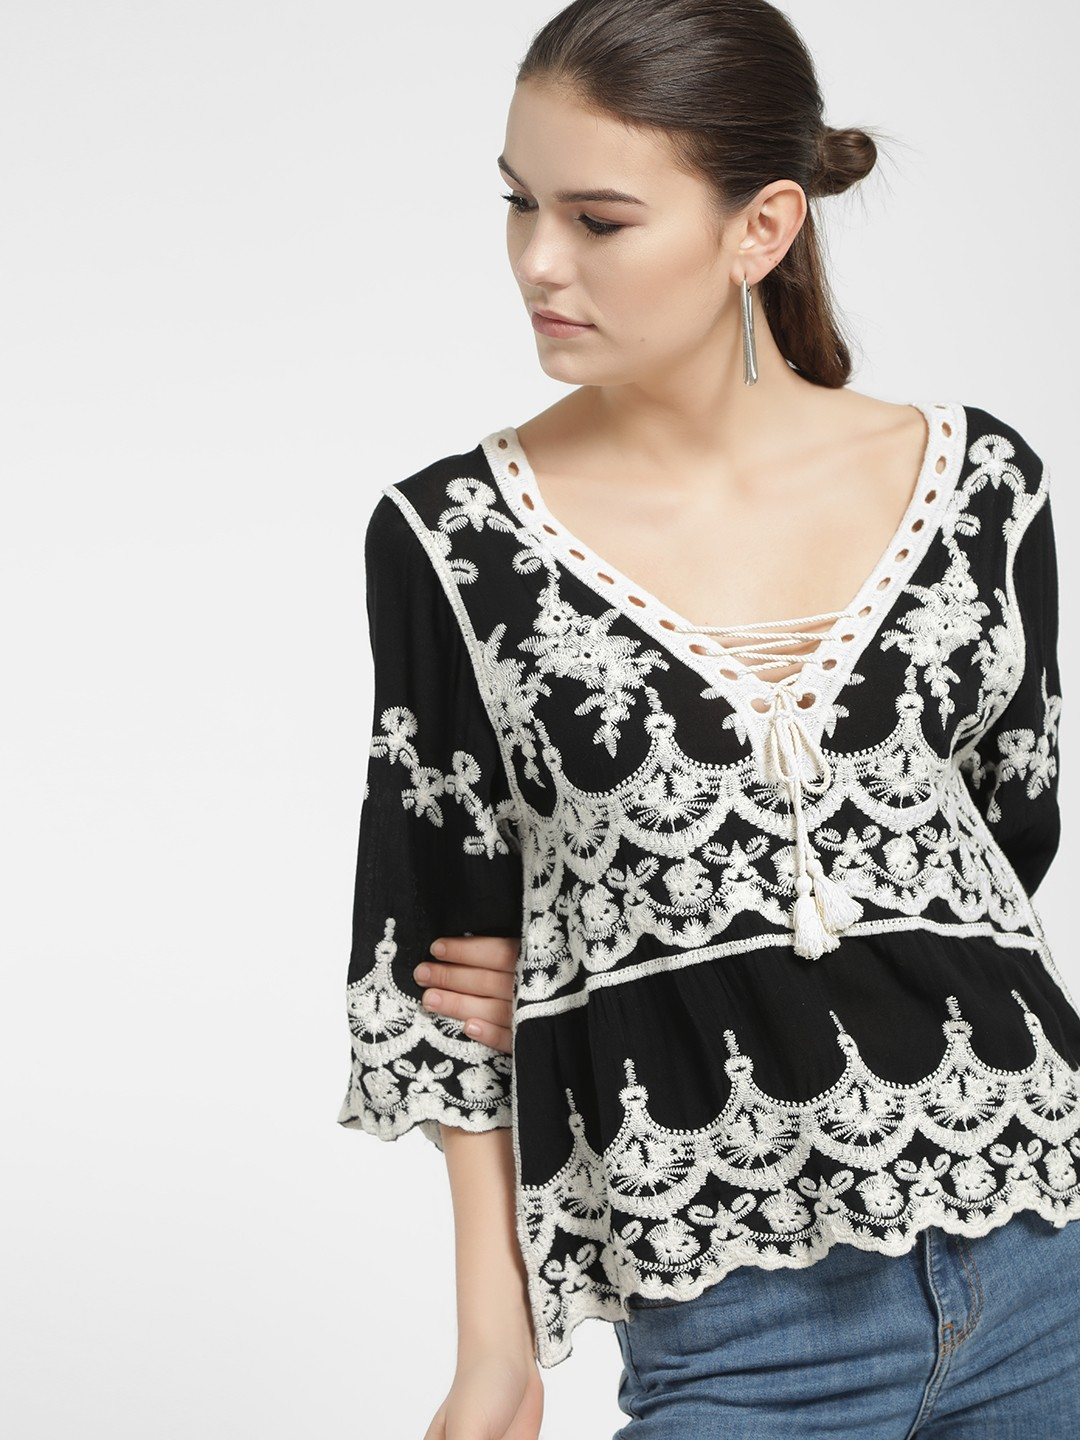 New Look Black Crochet Lace Embroidered Blouse 1